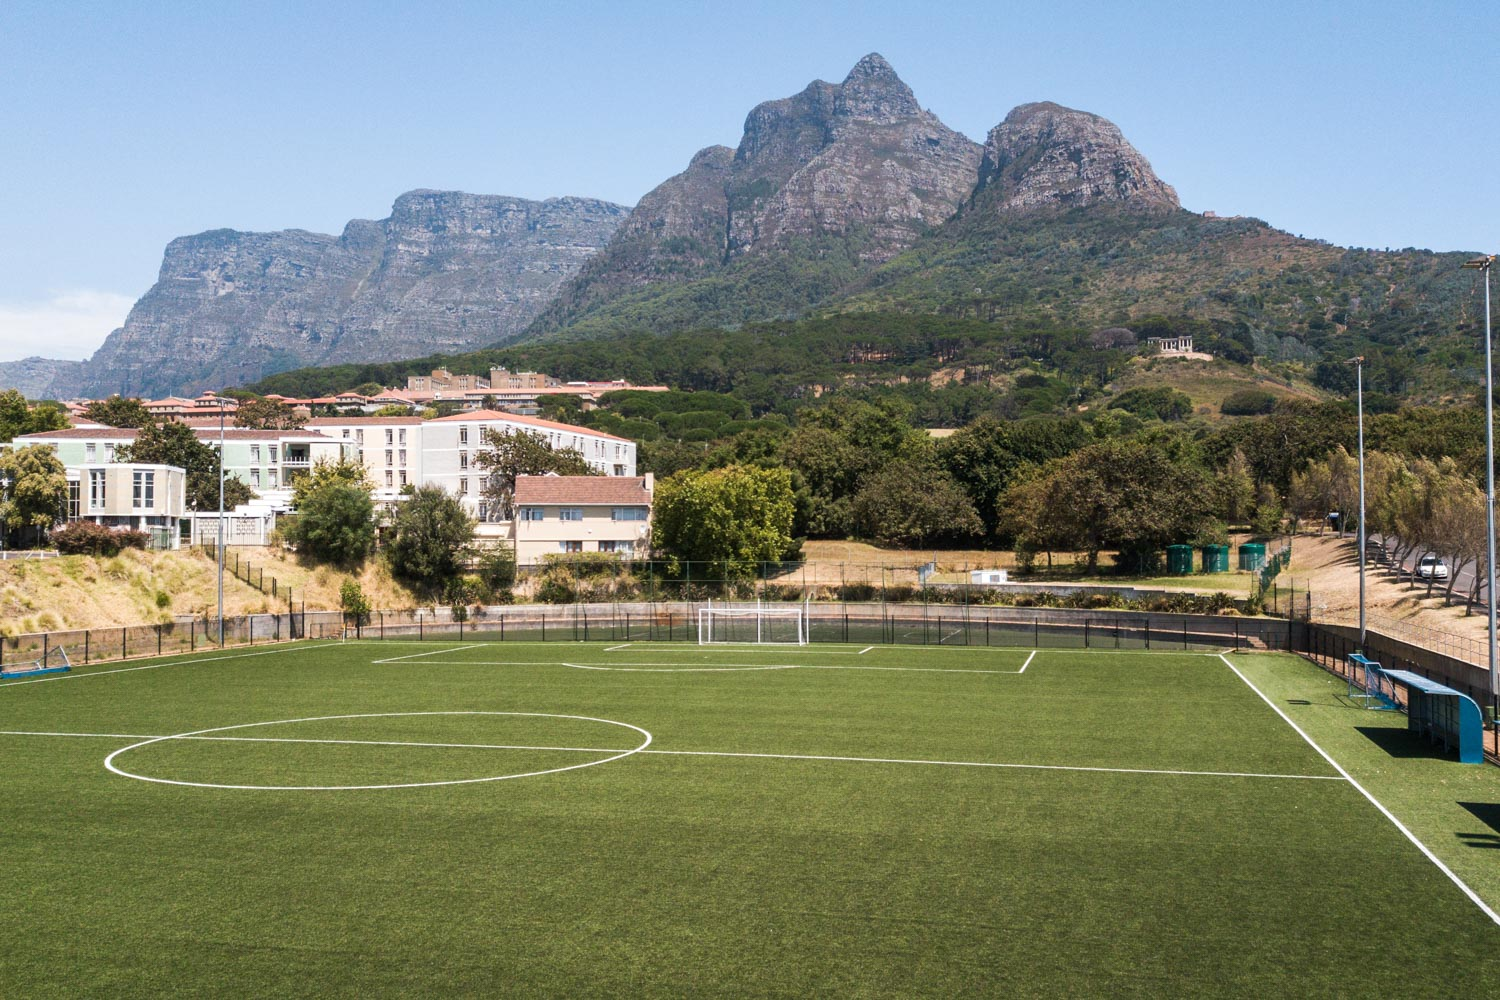 Artificial outdoor football pitch at University of Cape Town (3)